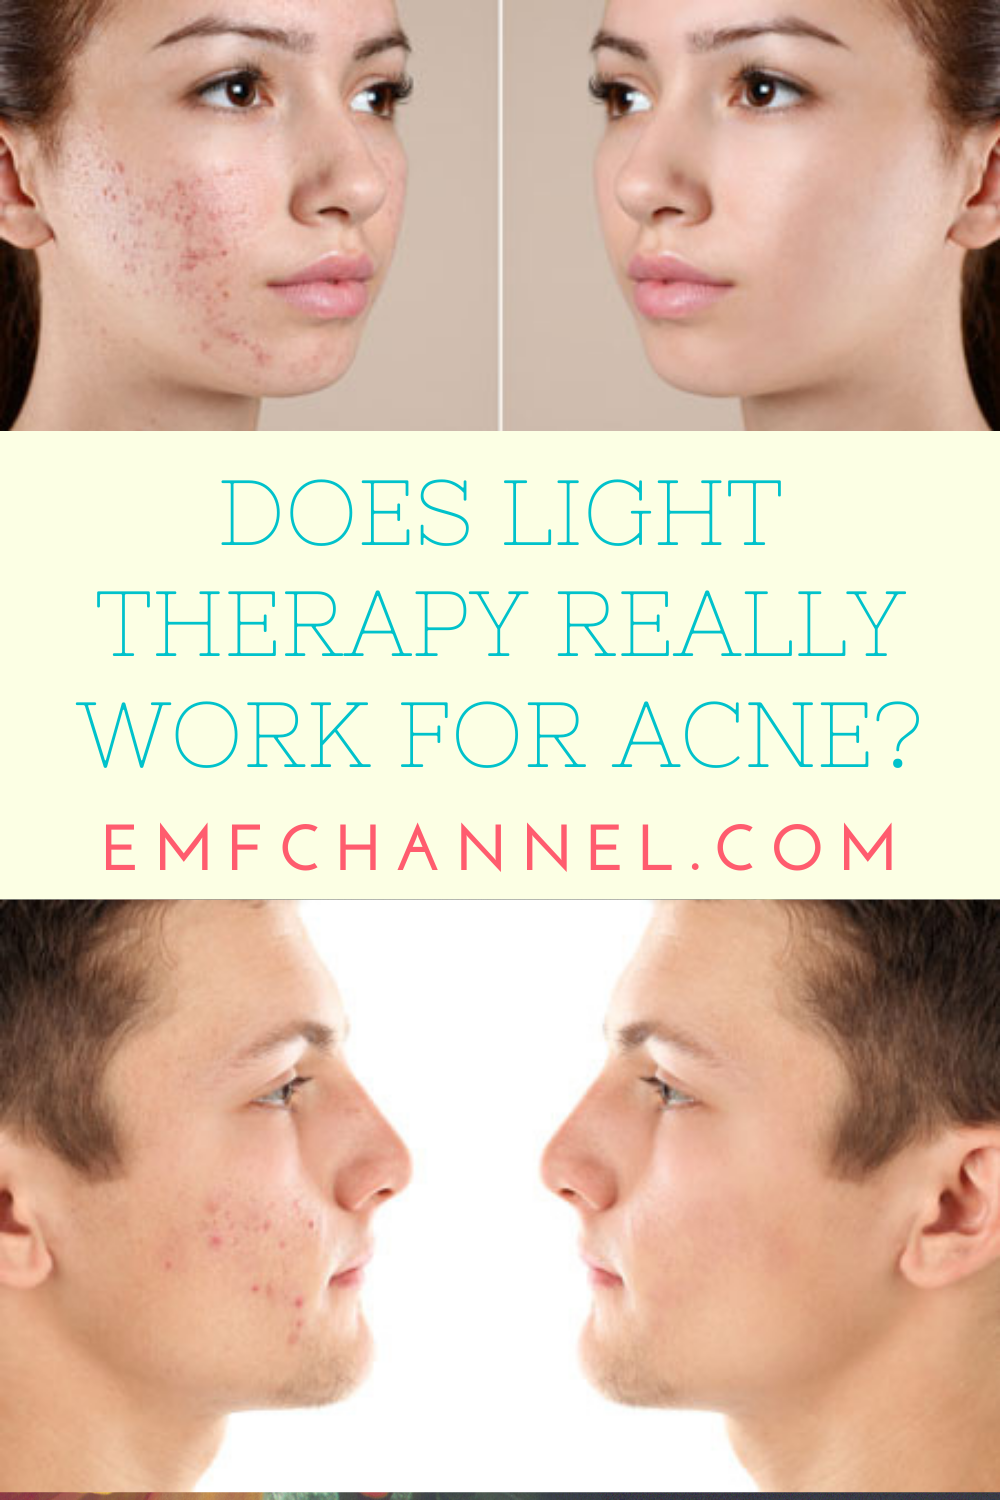 Does Light Therapy Really Work for Acne?